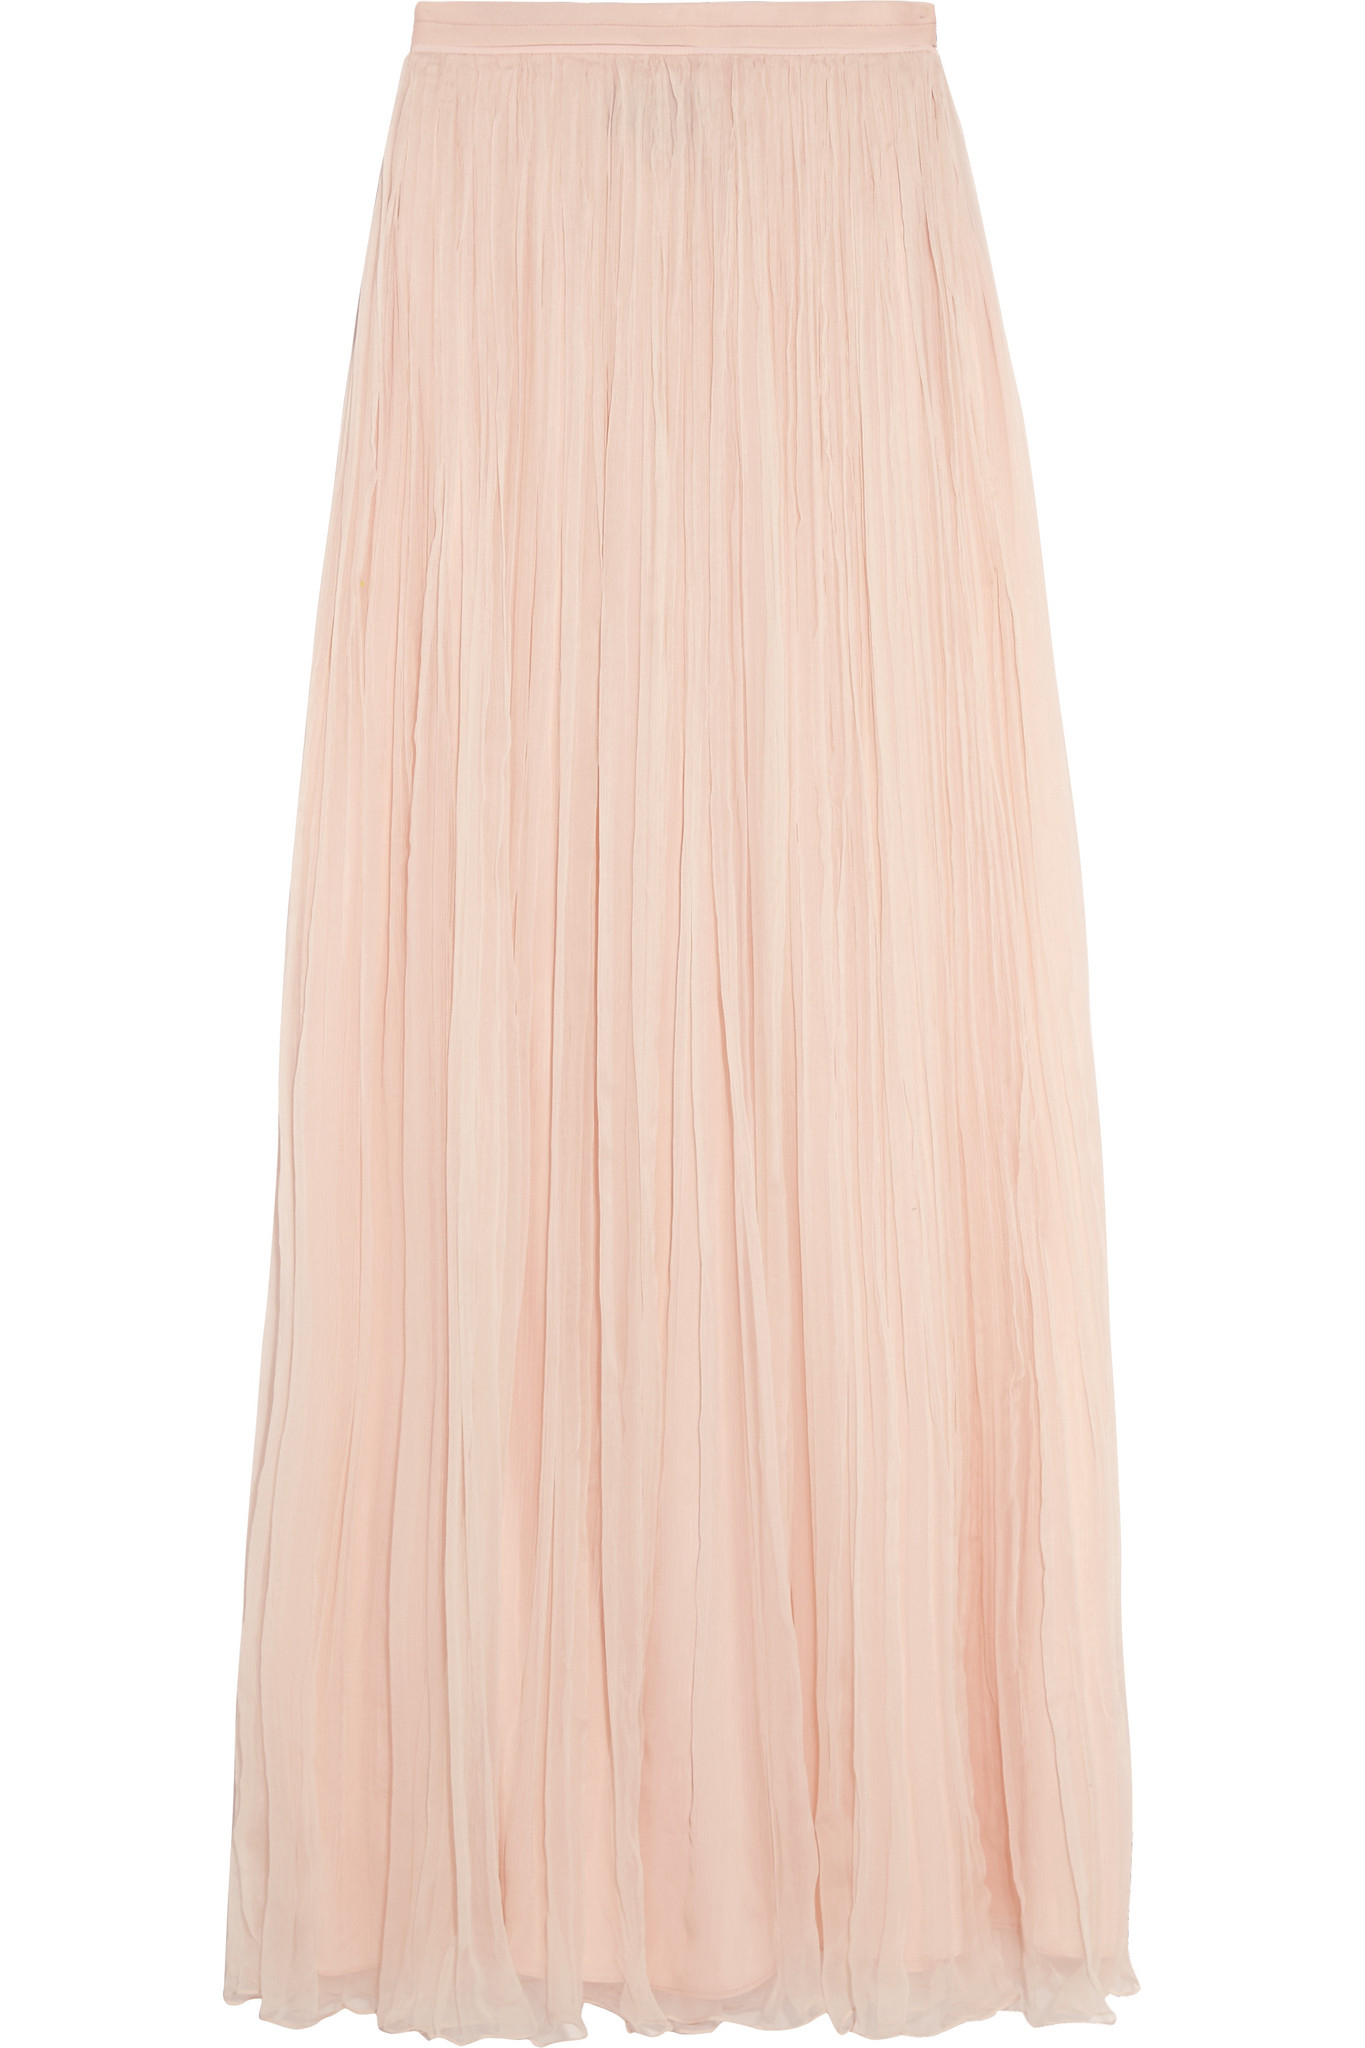 ab8d71c545 needle-thread-blush-crinkled-chiffon-maxi-skirt-pink -product-1-787266649-normal